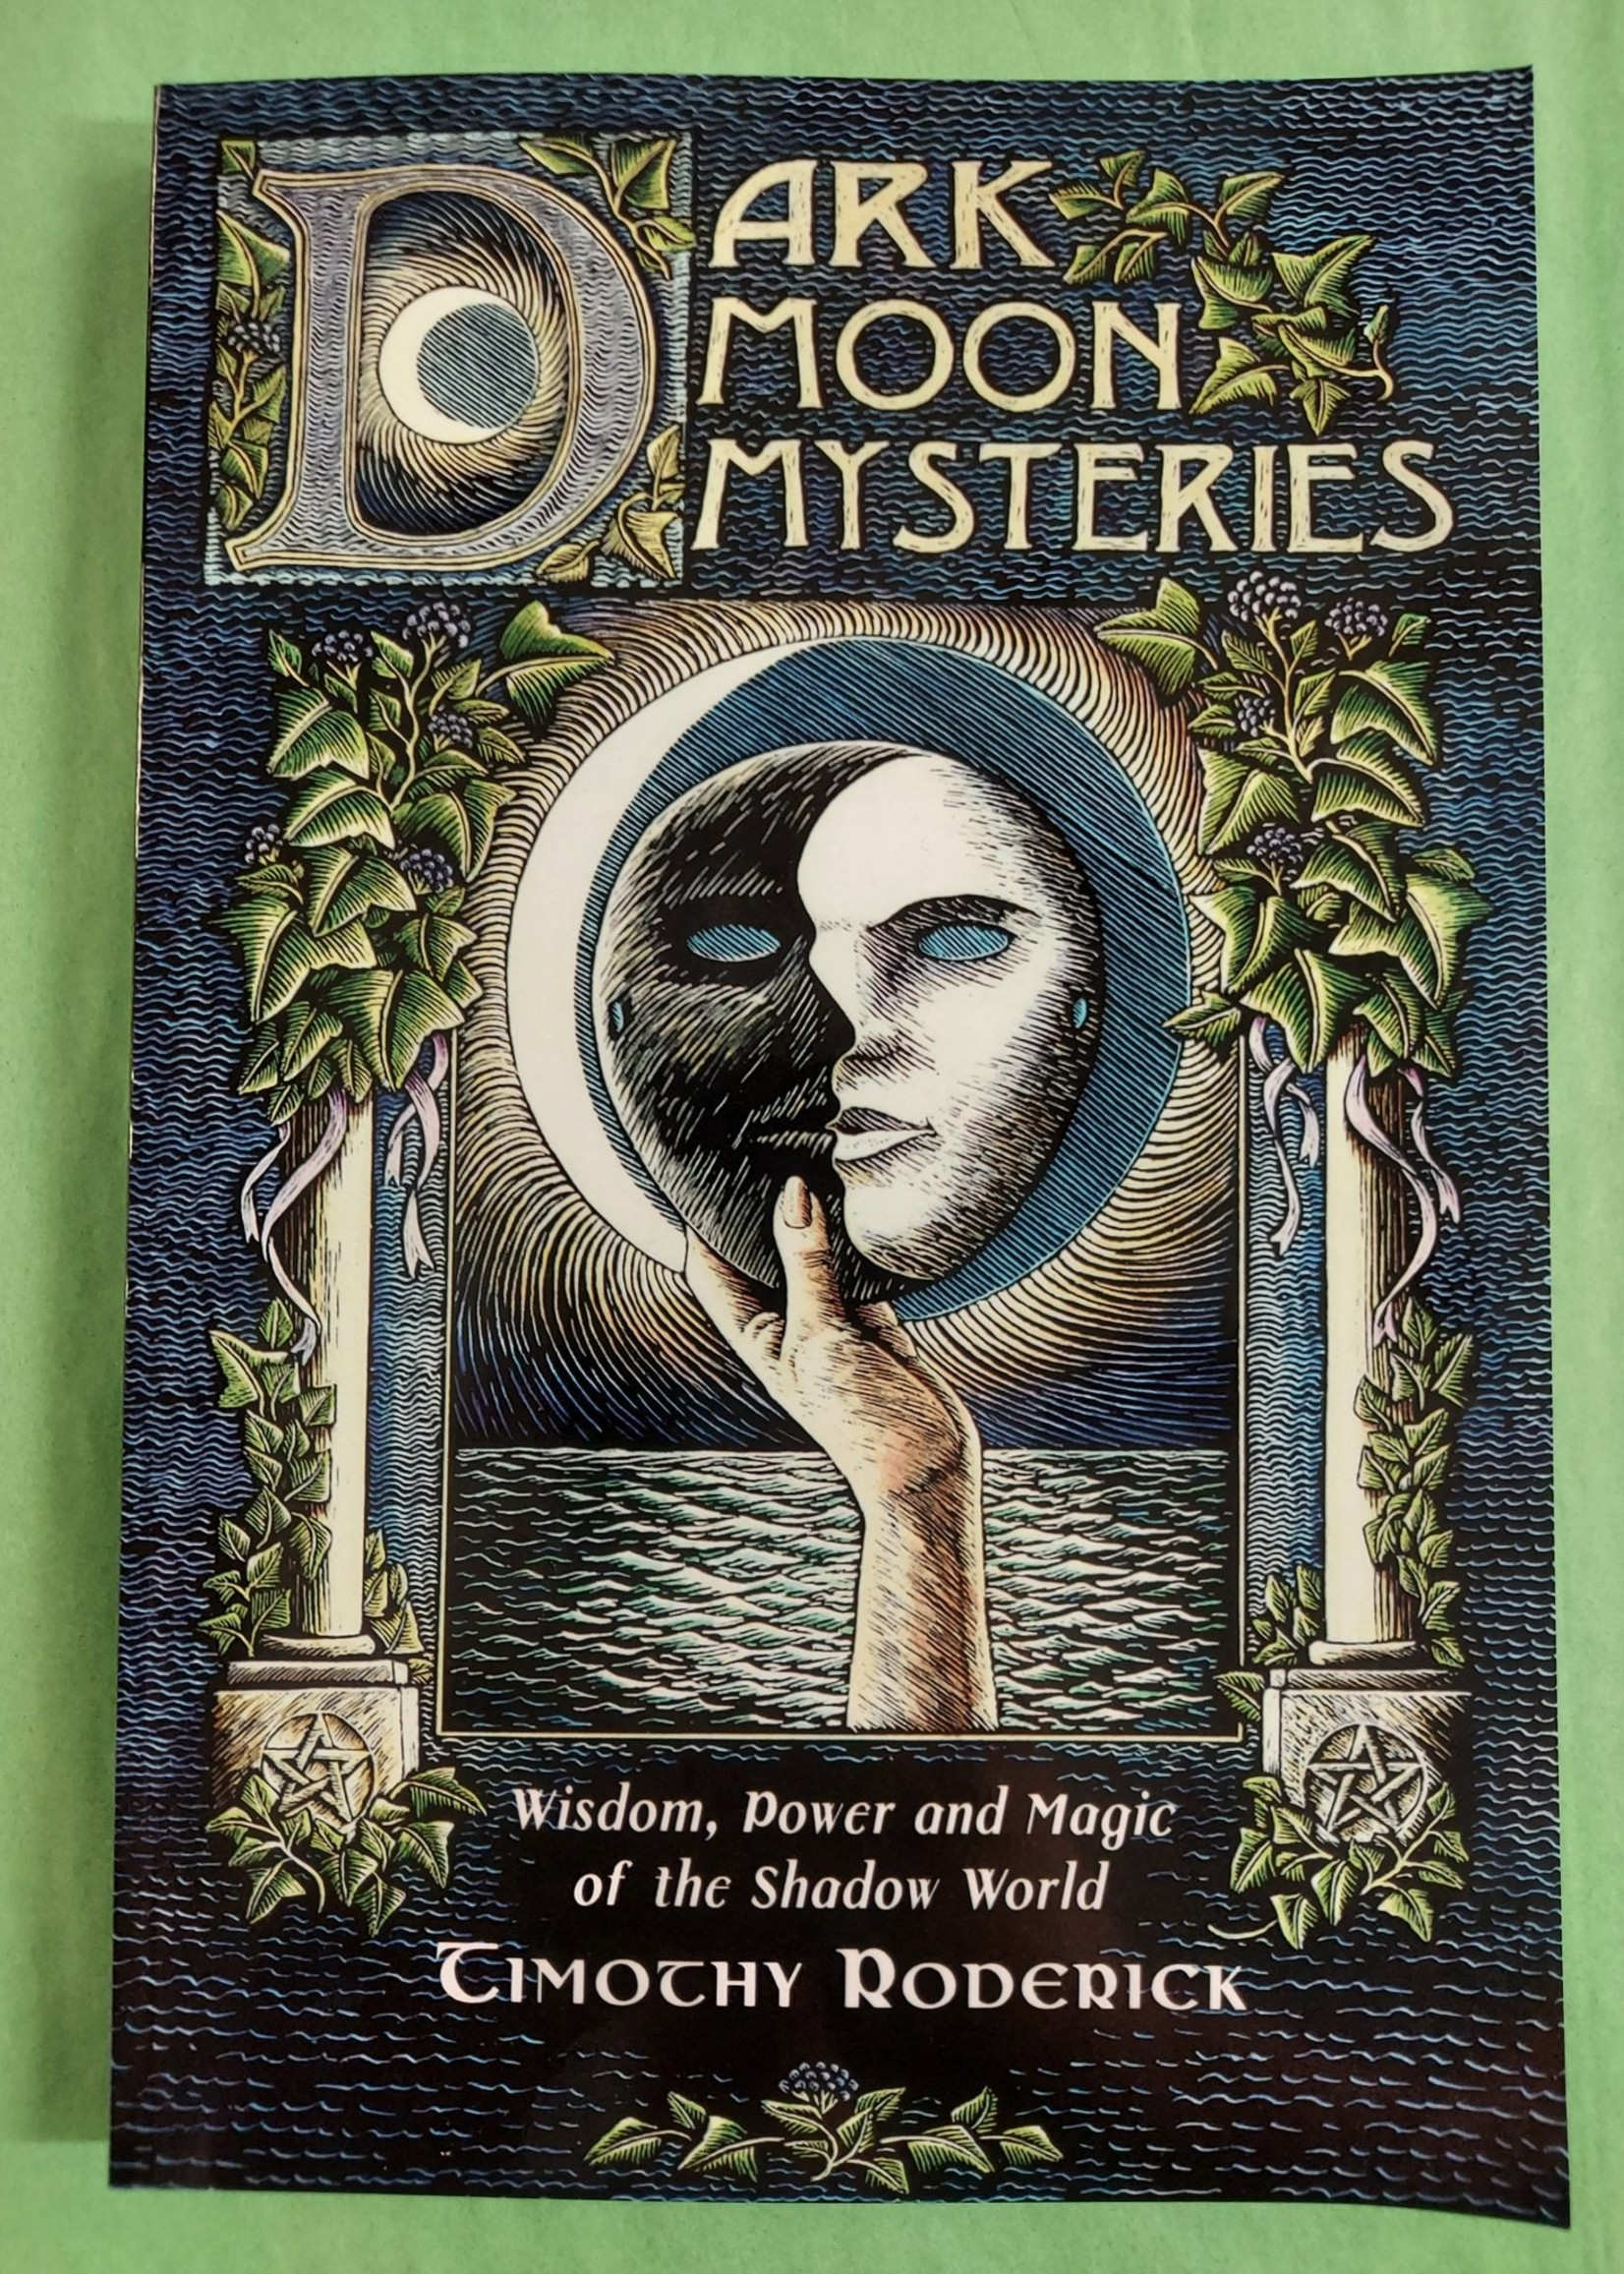 Dark Moon Mysteries - BY TIMOTHY RODERICK